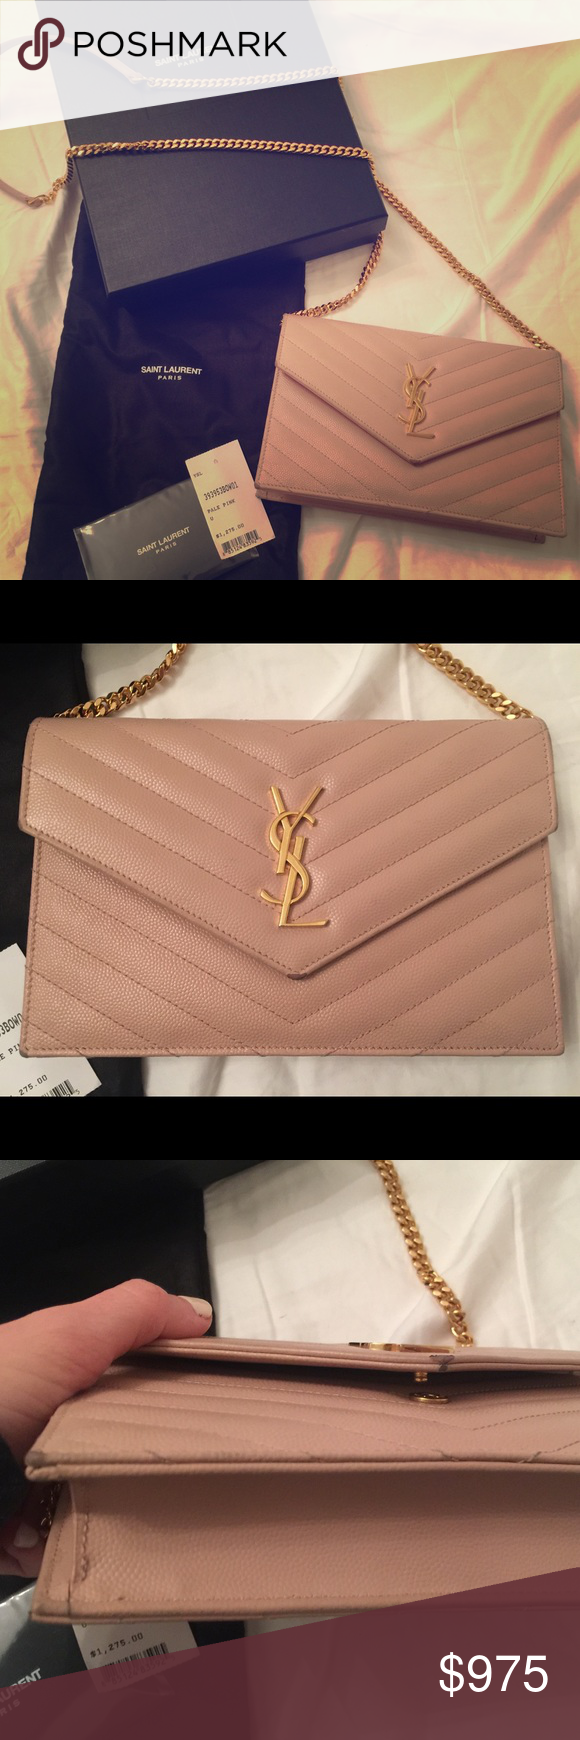 47b77b06 YSL Monogram Wallet On A Chain in Pale Pink MONOGRAM SAINT LAURENT ...